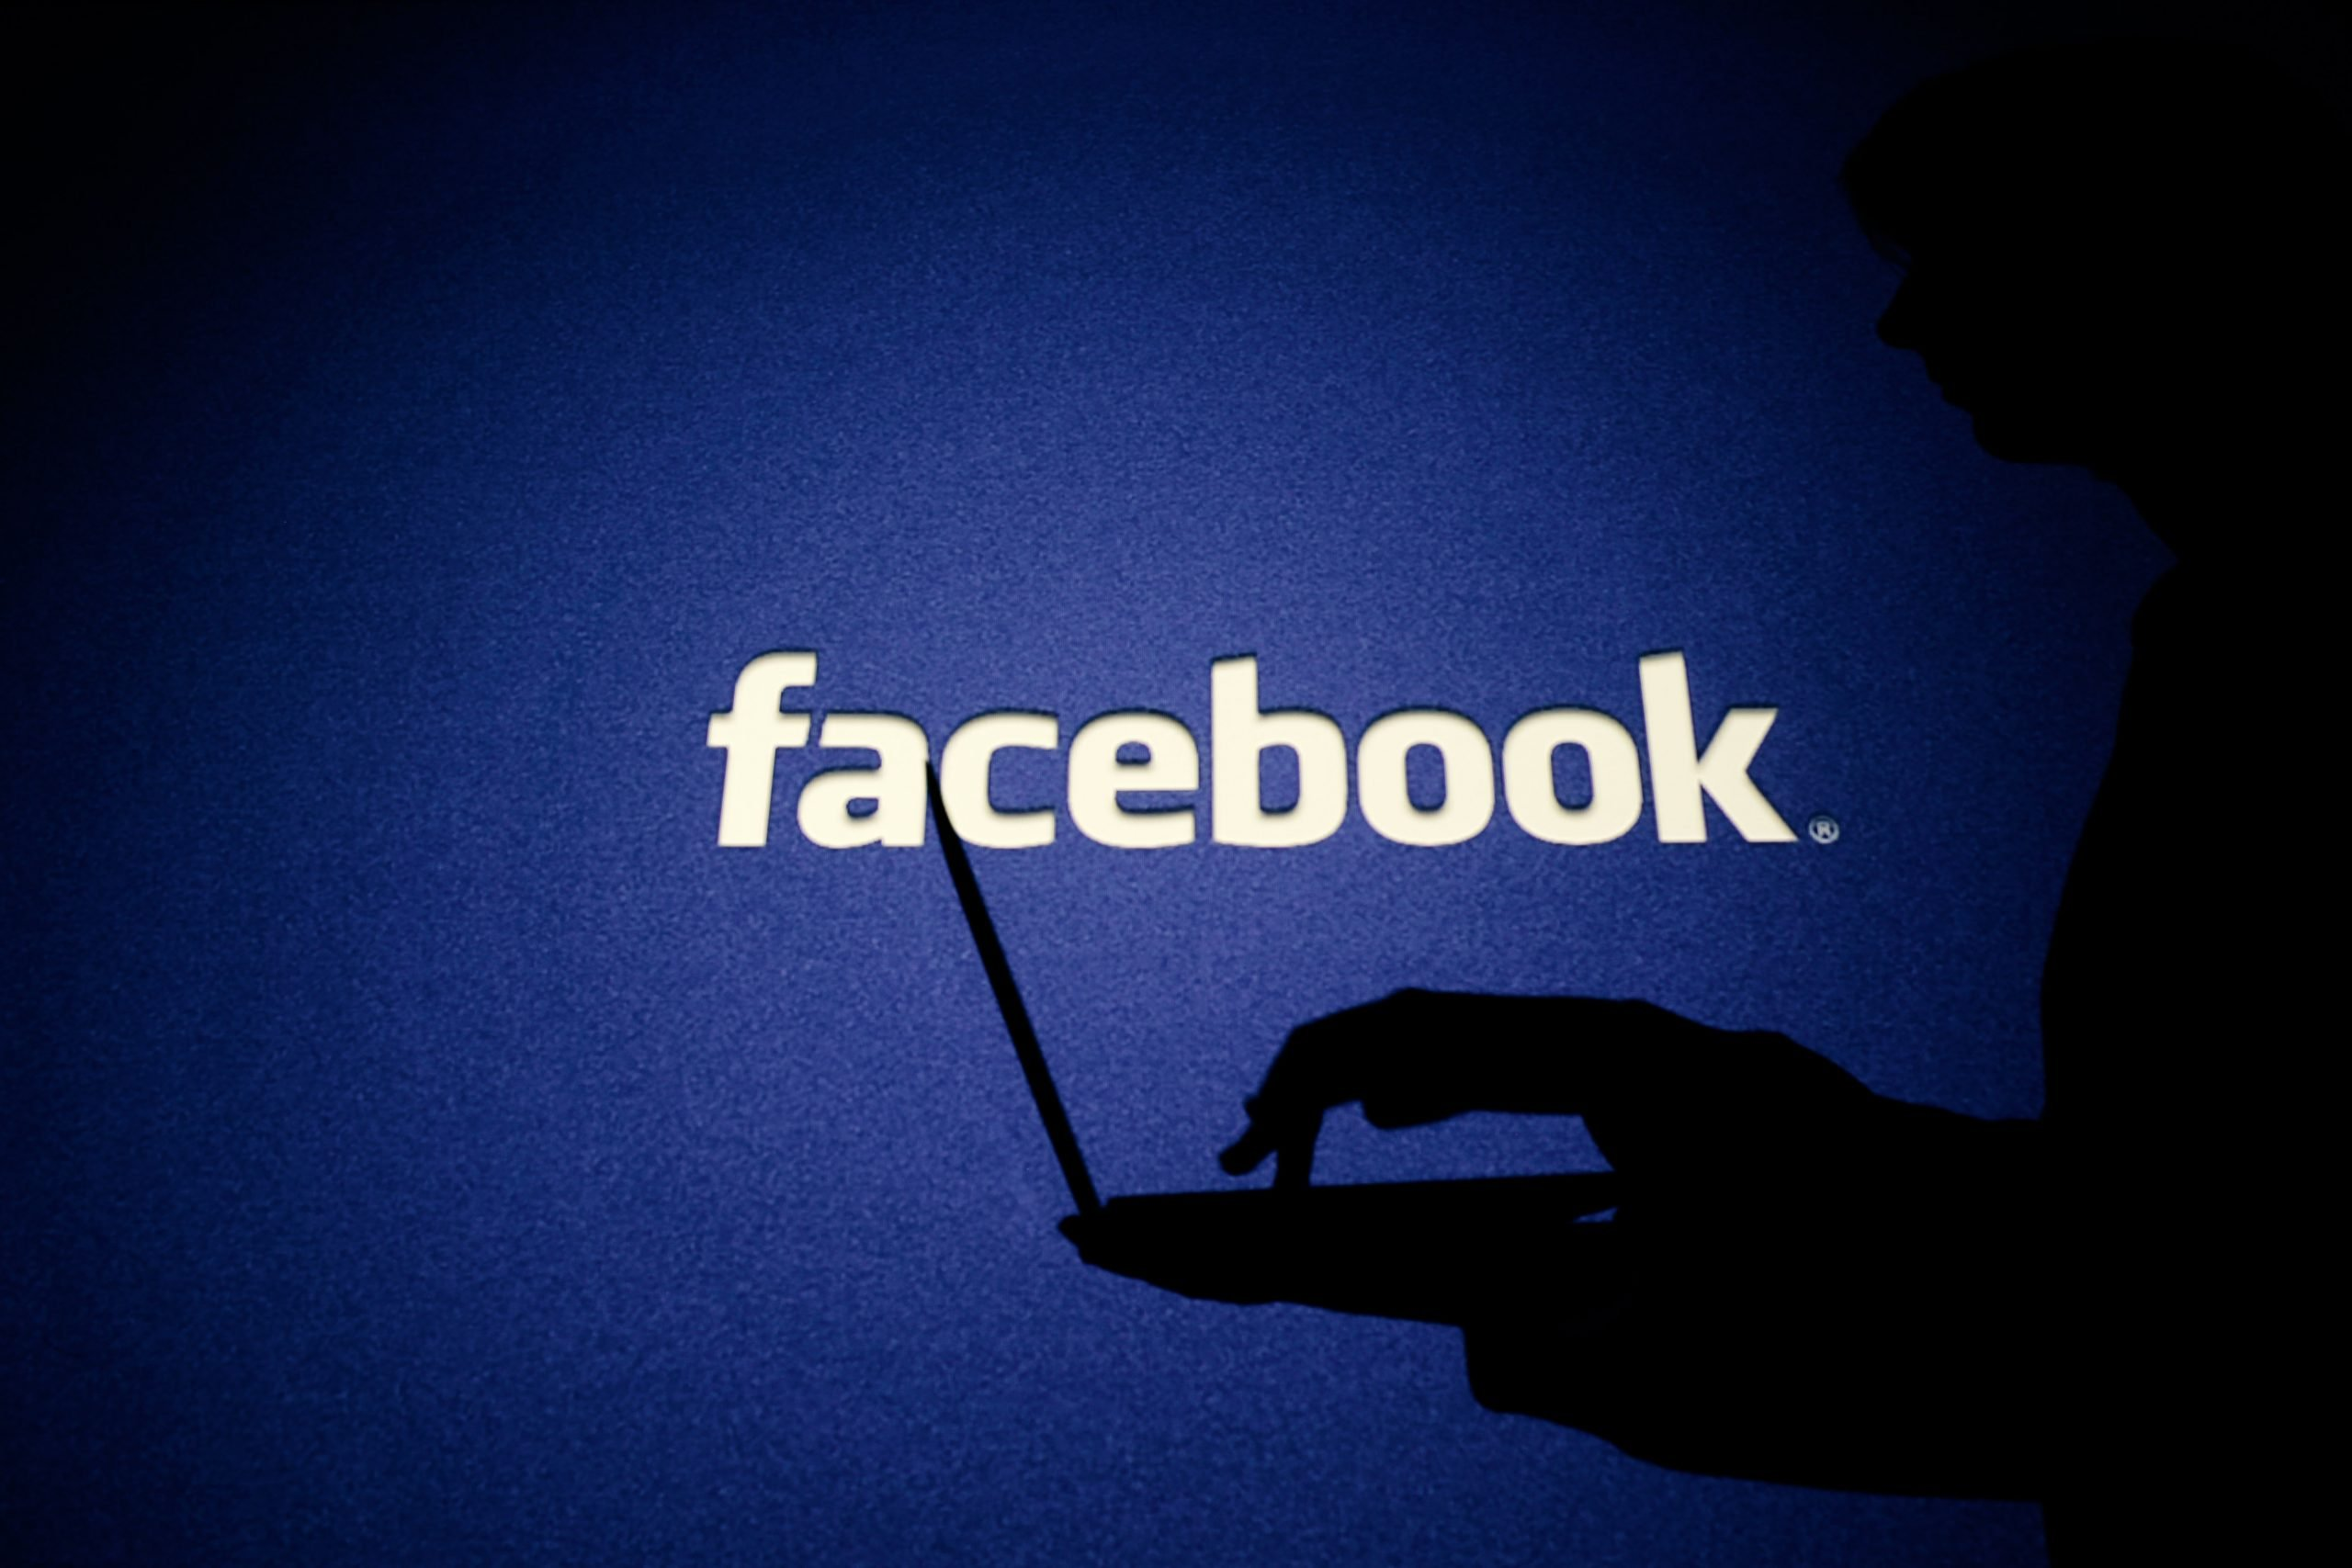 Australian authorities have commented on Facebook restrictions